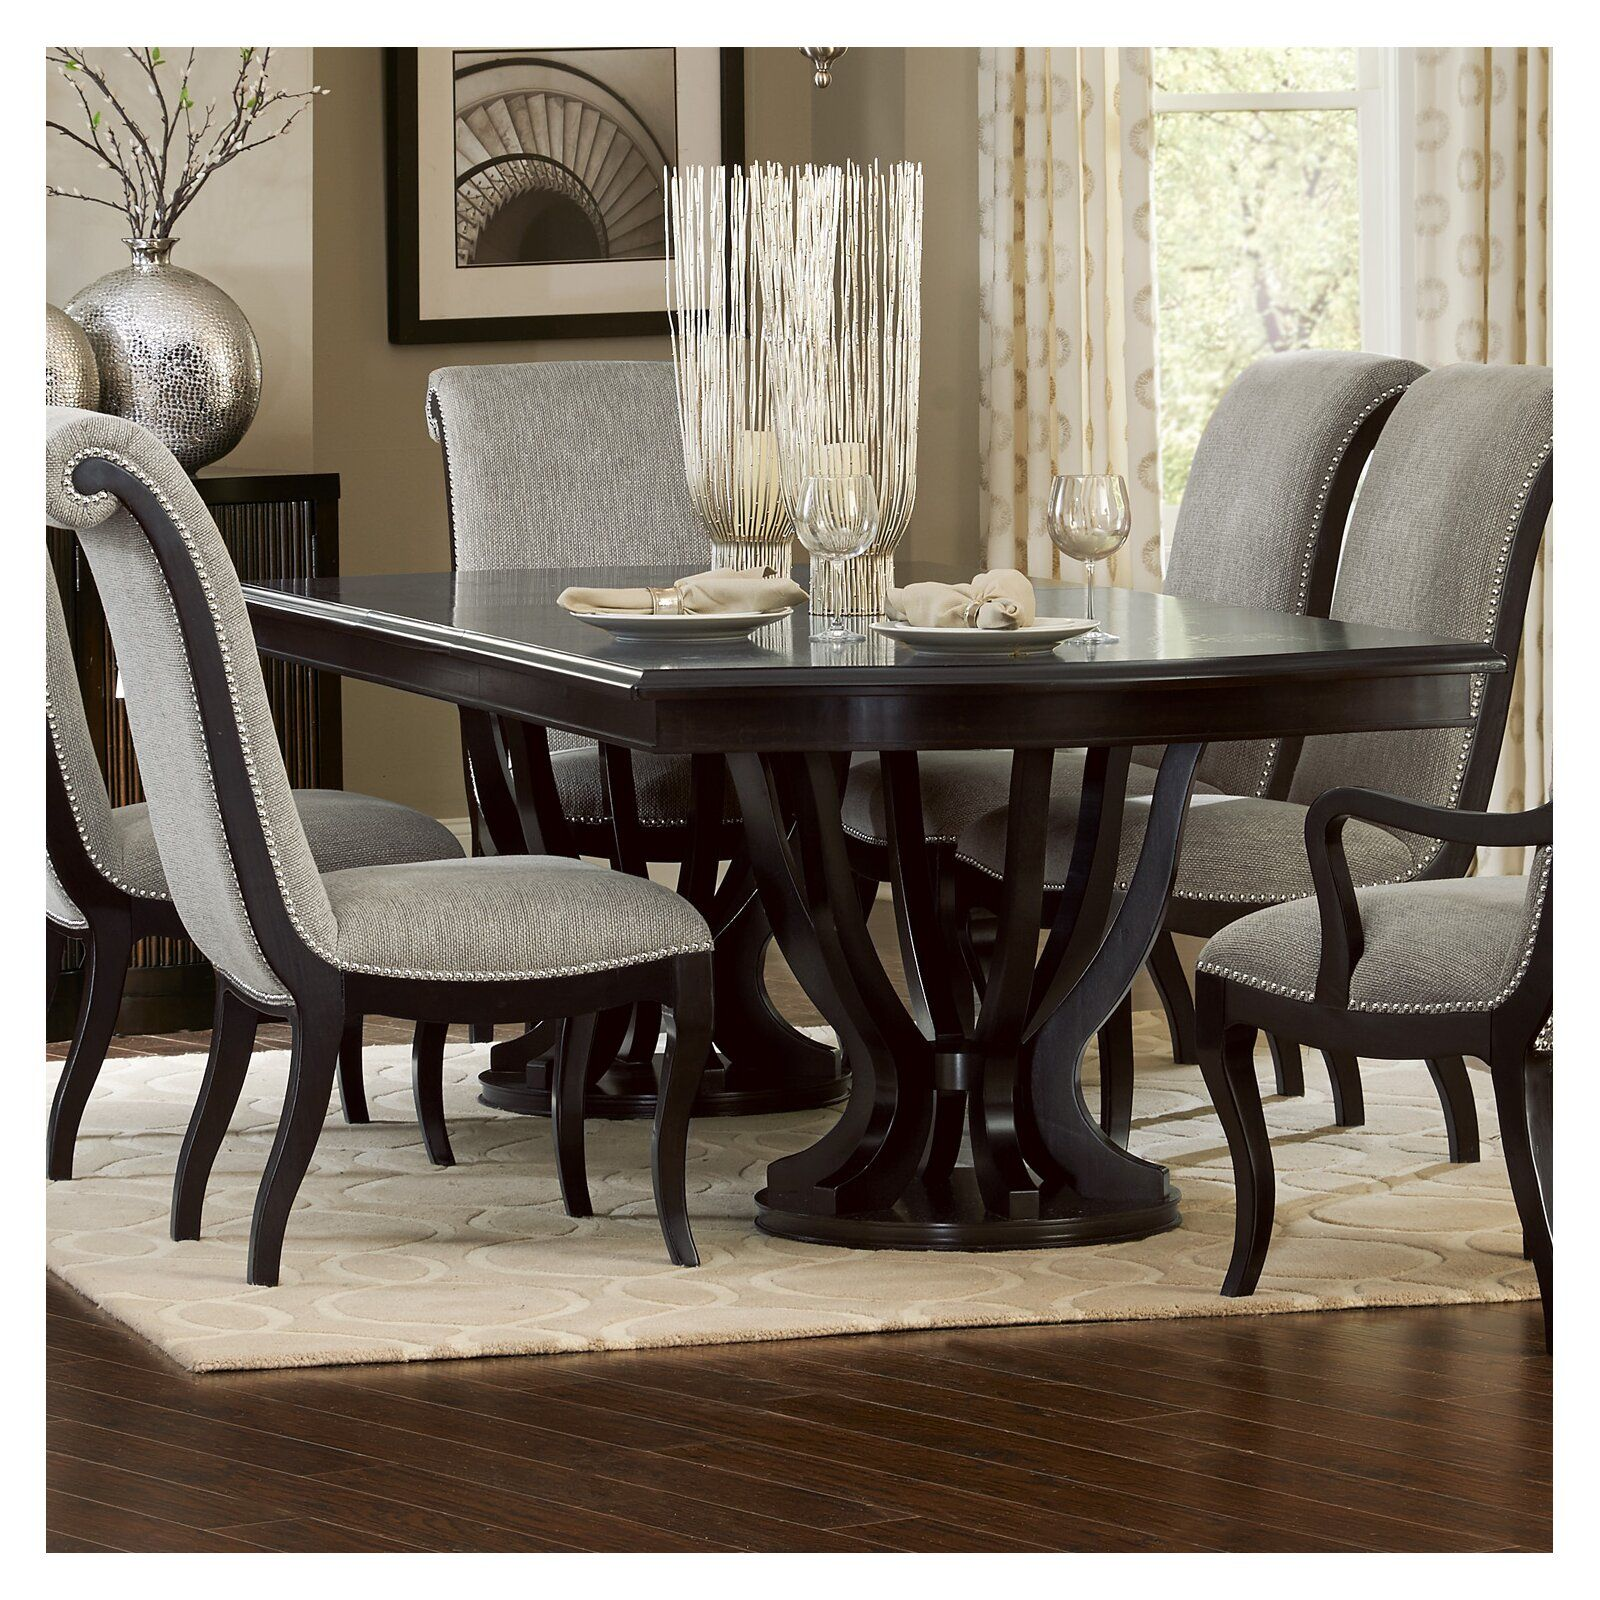 Canora Grey Baypoint Dining Table Dining Room Table Decor